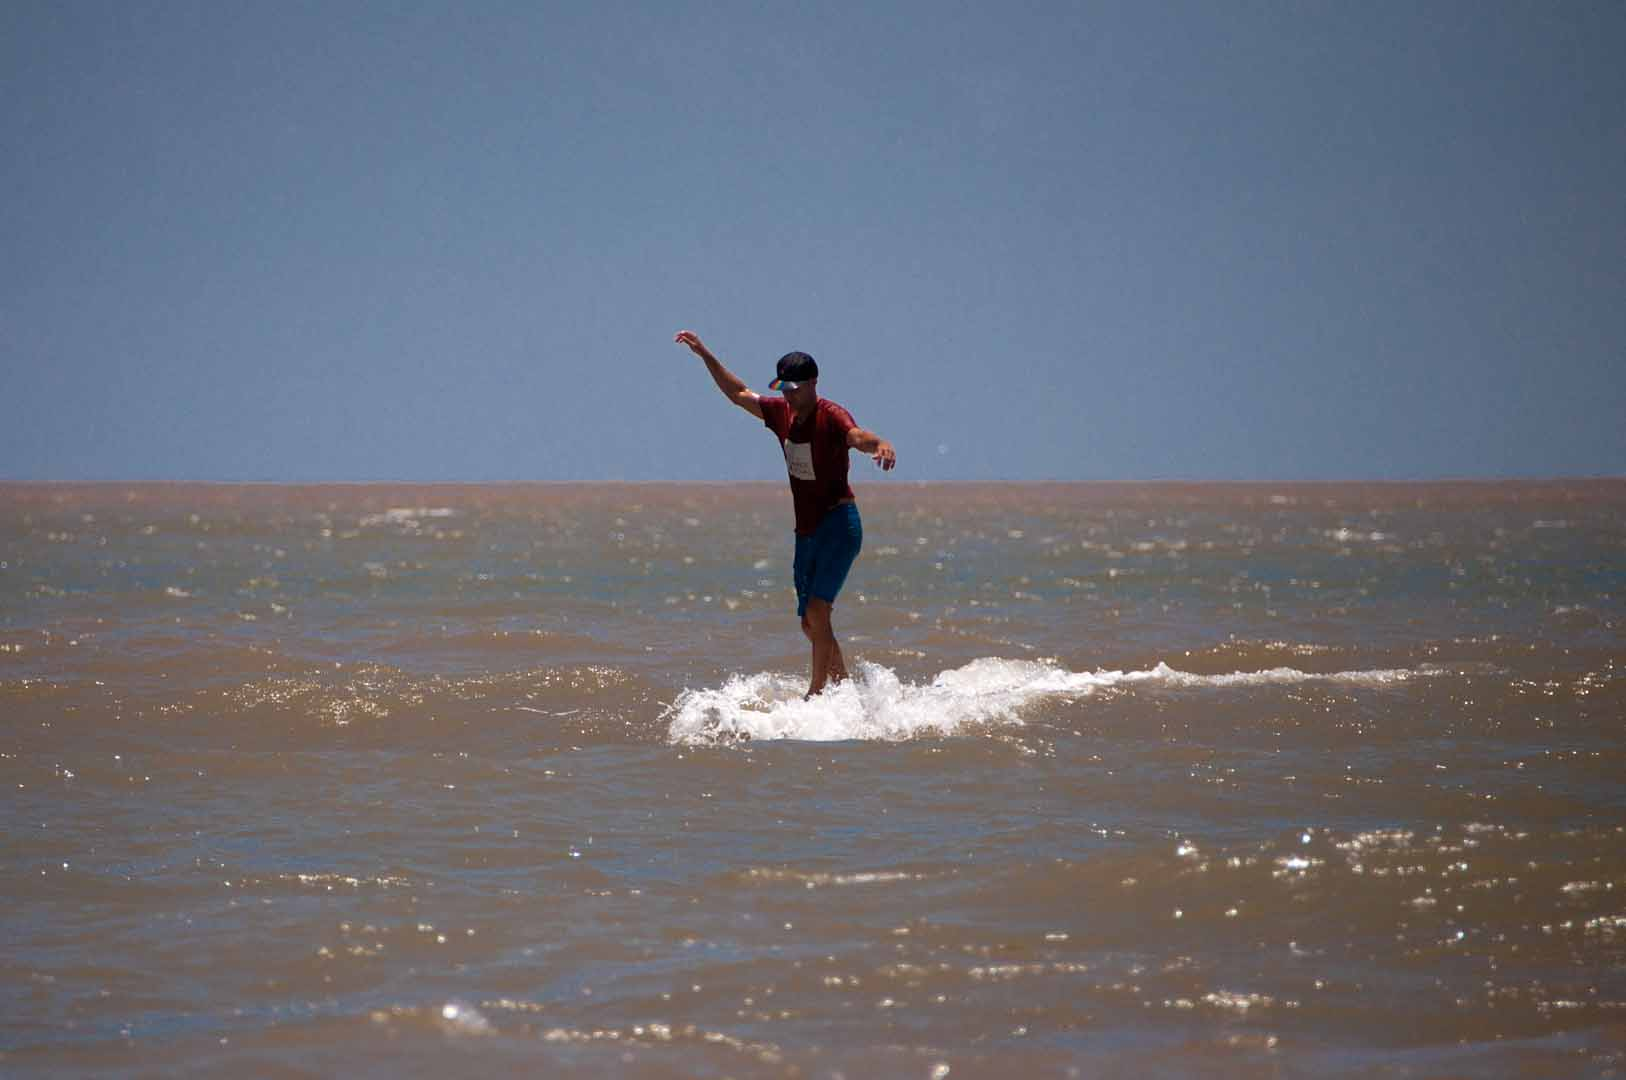 SurfsideLateJune_20150627_206